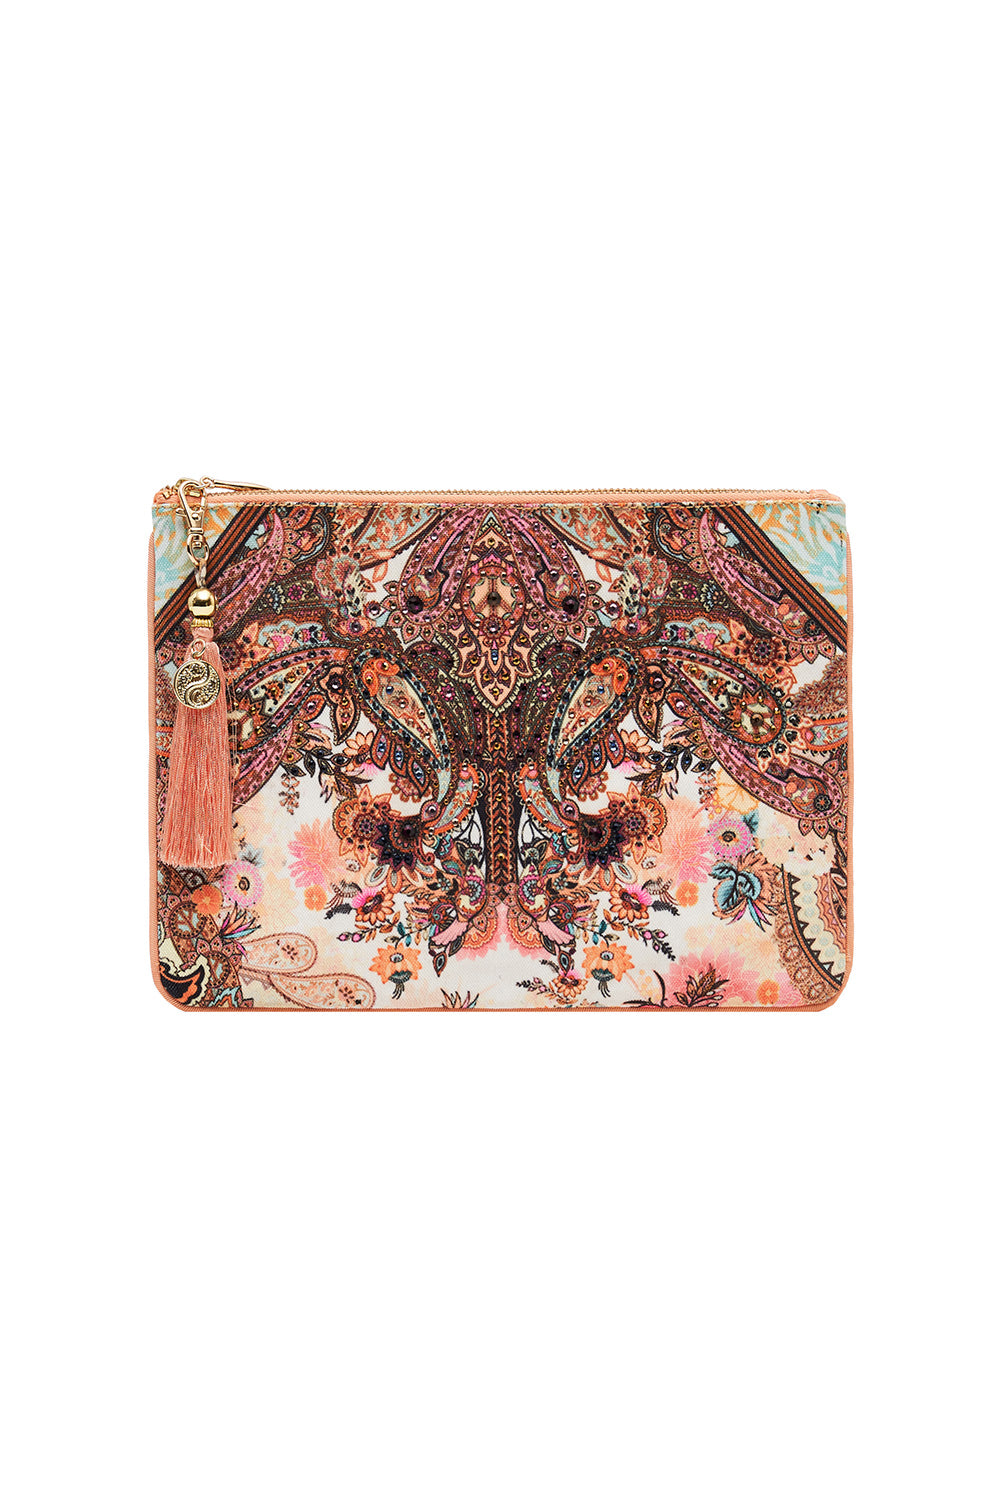 SMALL CANVAS CLUTCH CARNABY DISCO